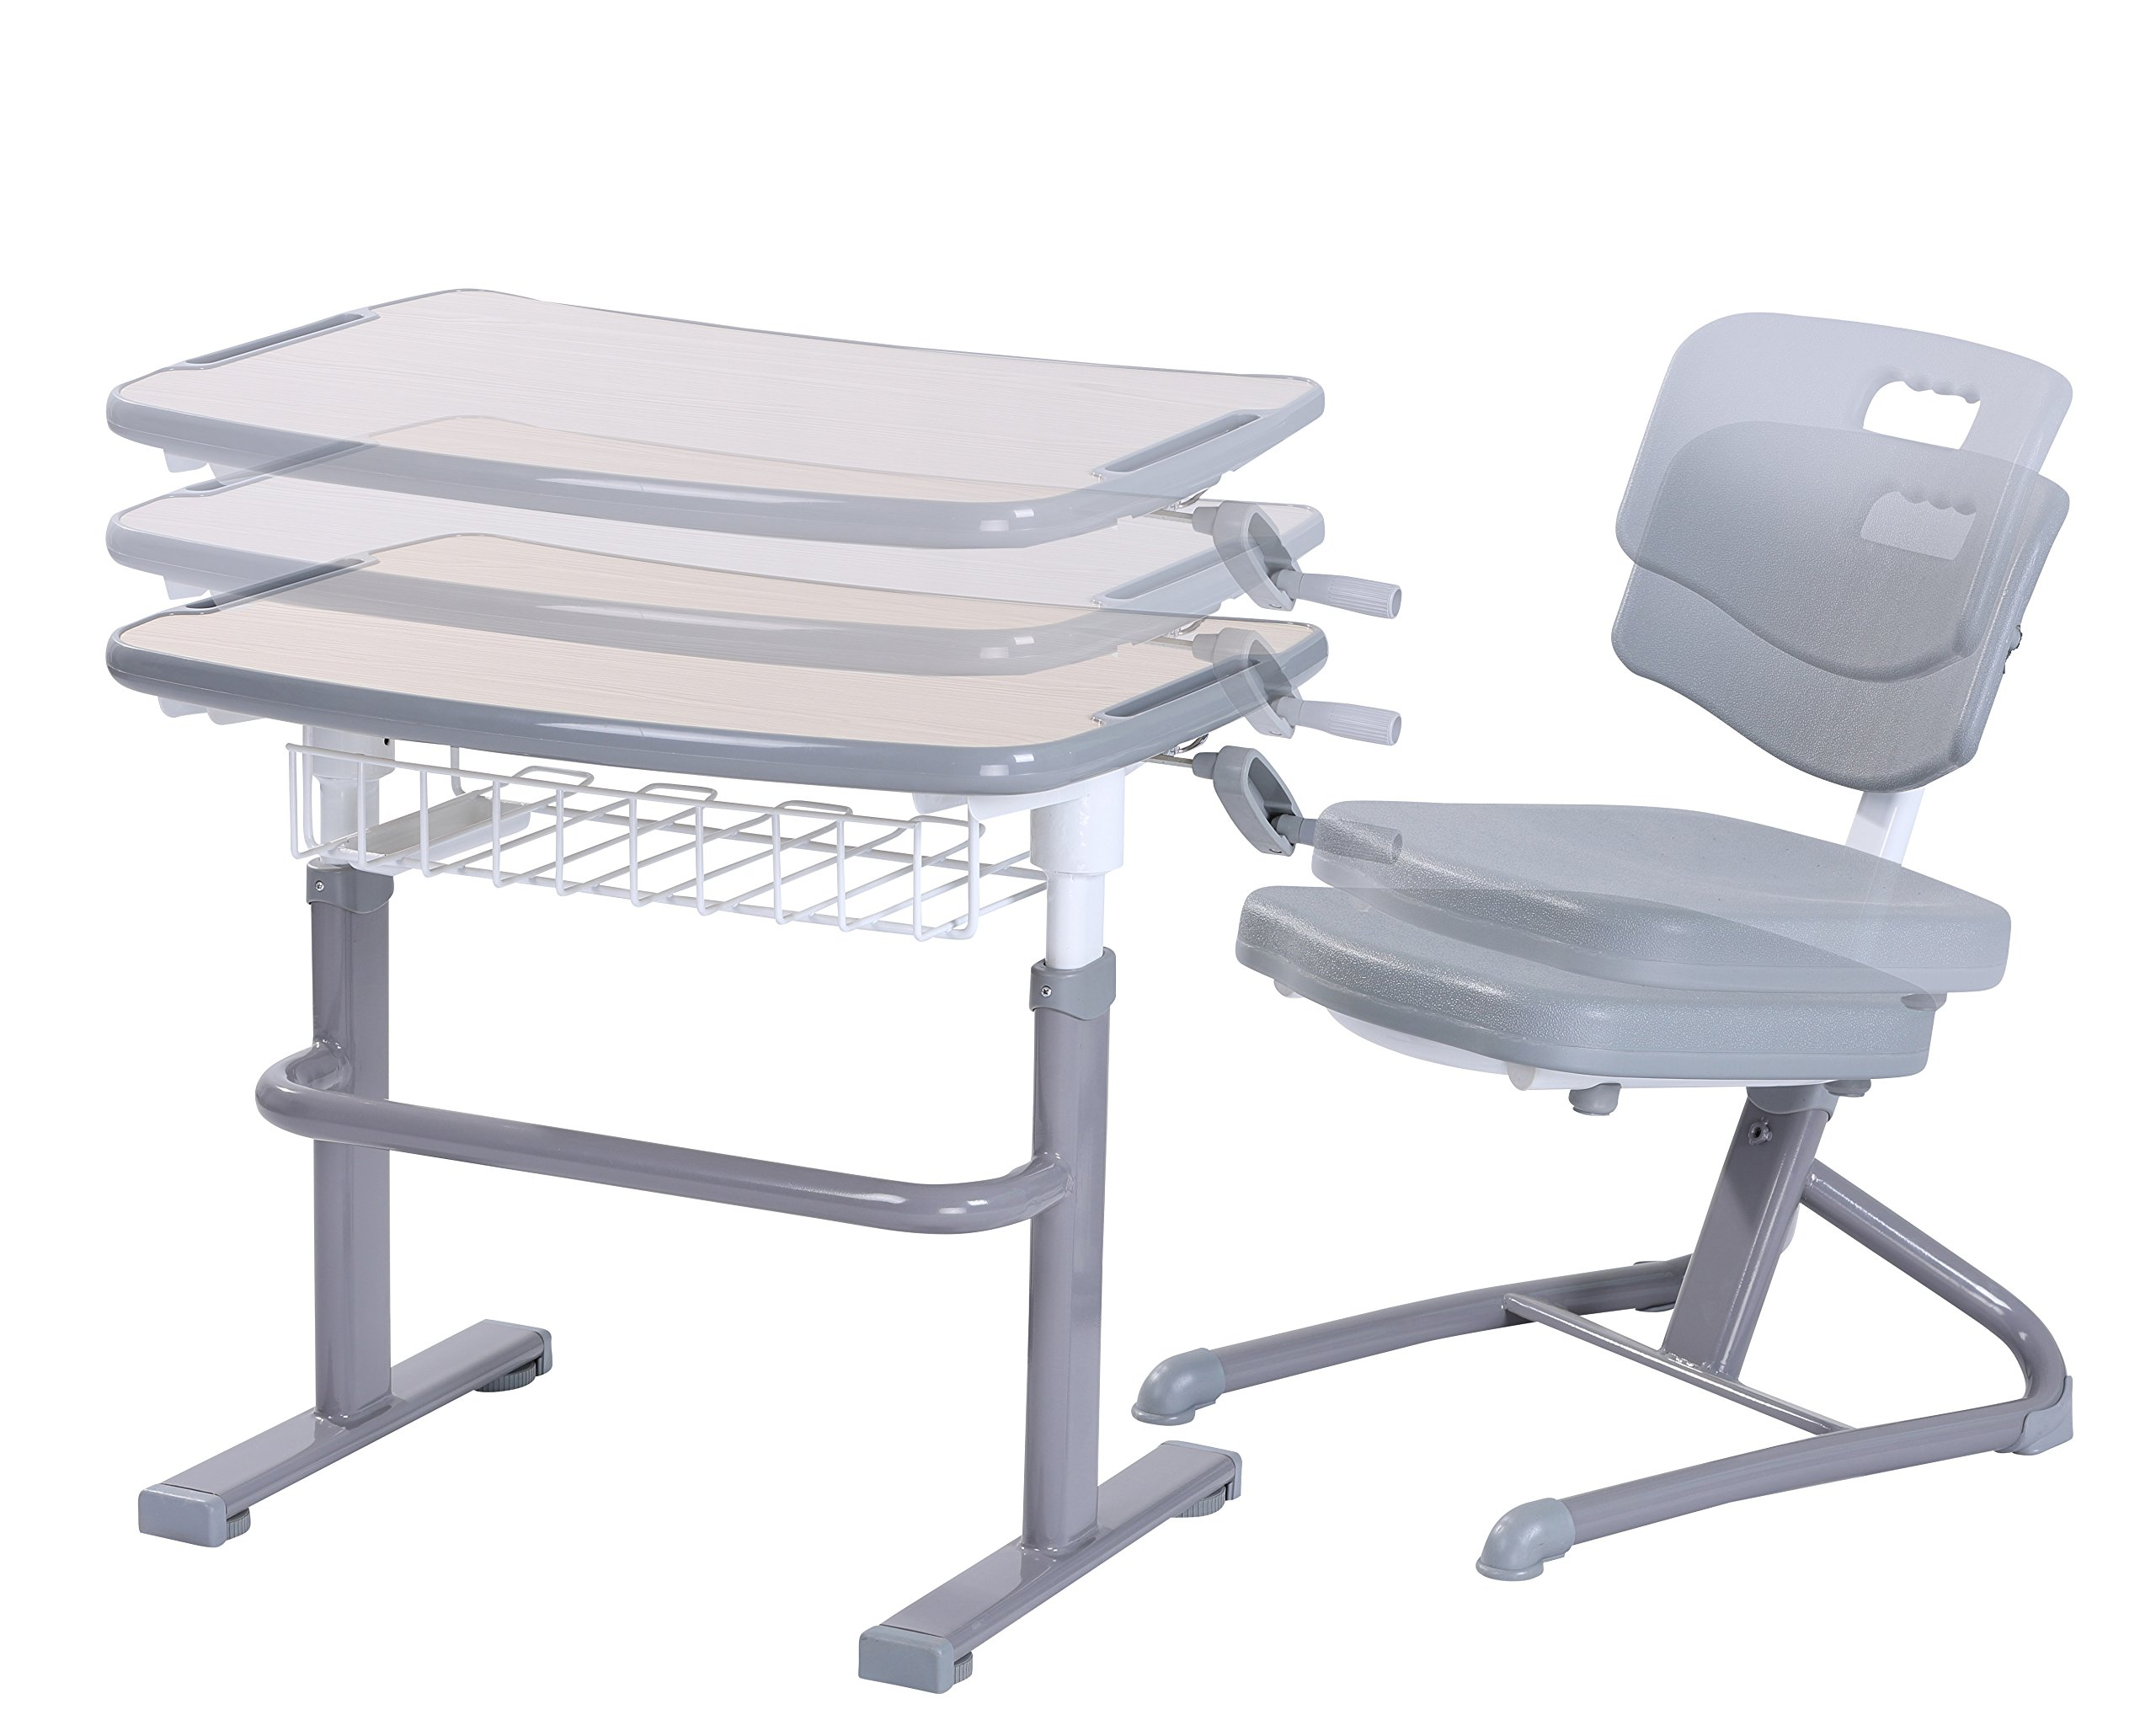 bintiva Adjustable Children's Desk and Chair - Customizable Ergonomic Student Desk Set